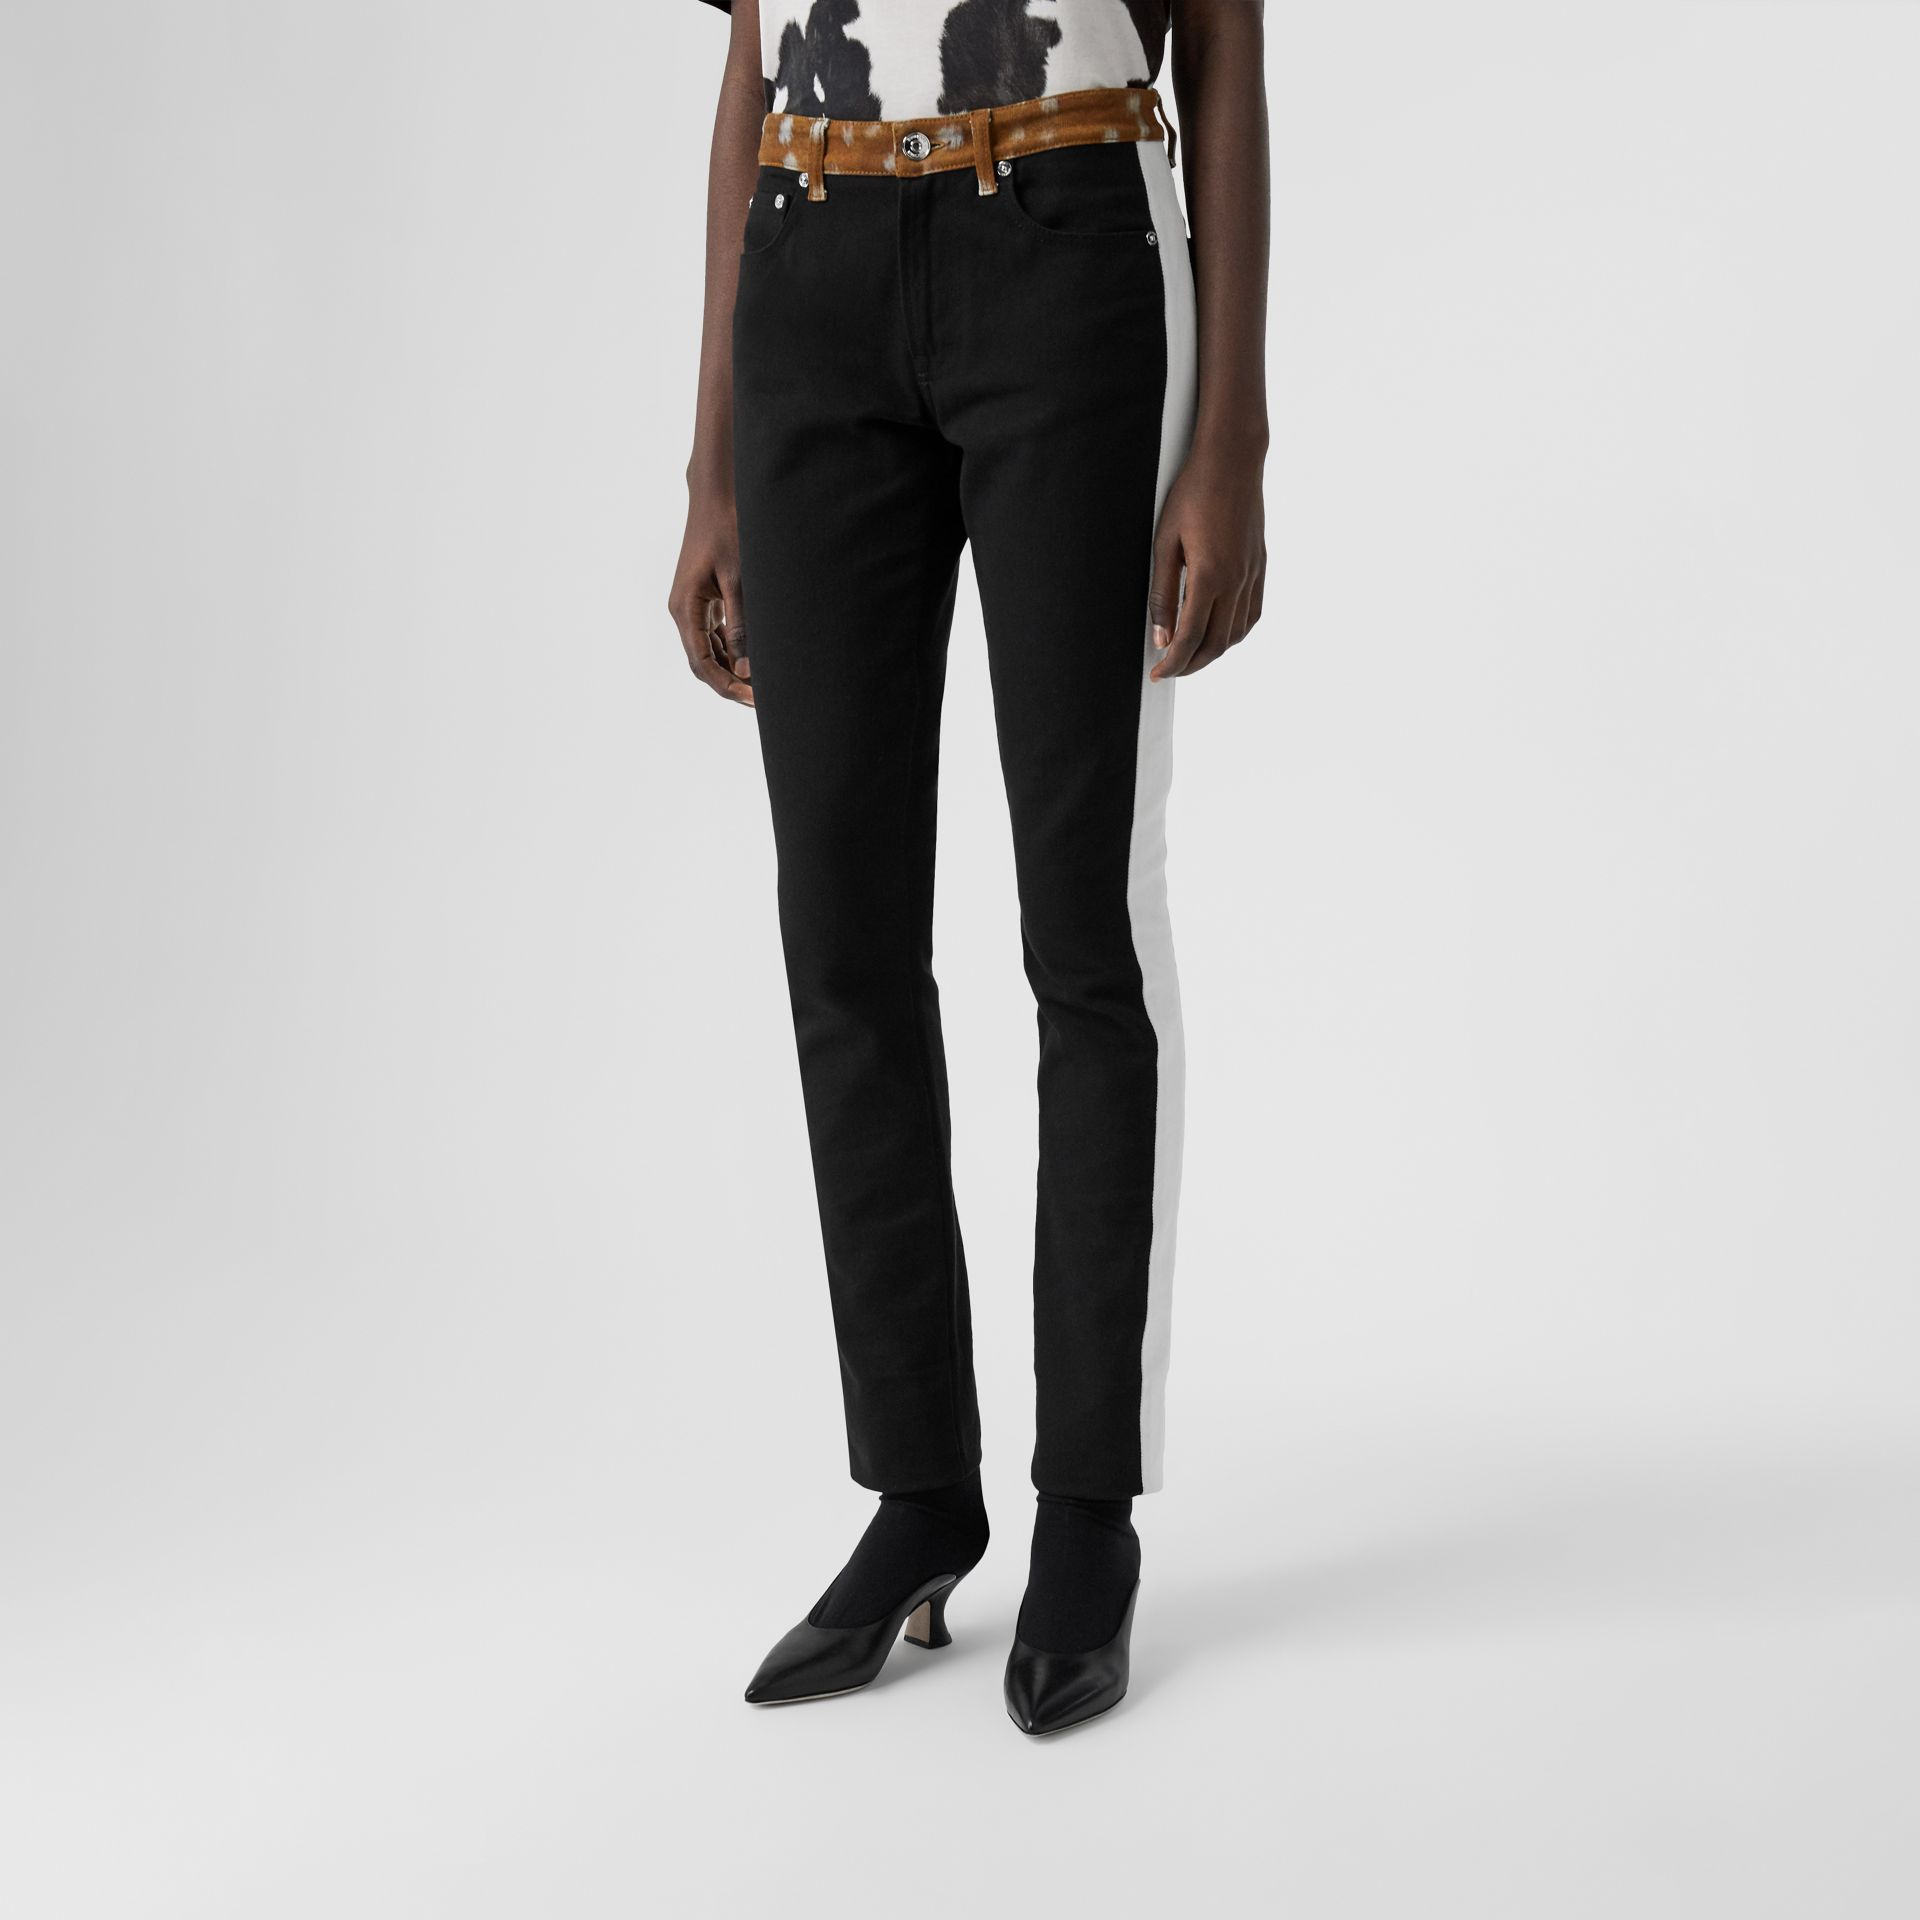 Straight Fit Deer Print Trim Japanese Denim Jeans in Black - Women | Burberry Hong Kong - gallery image 5